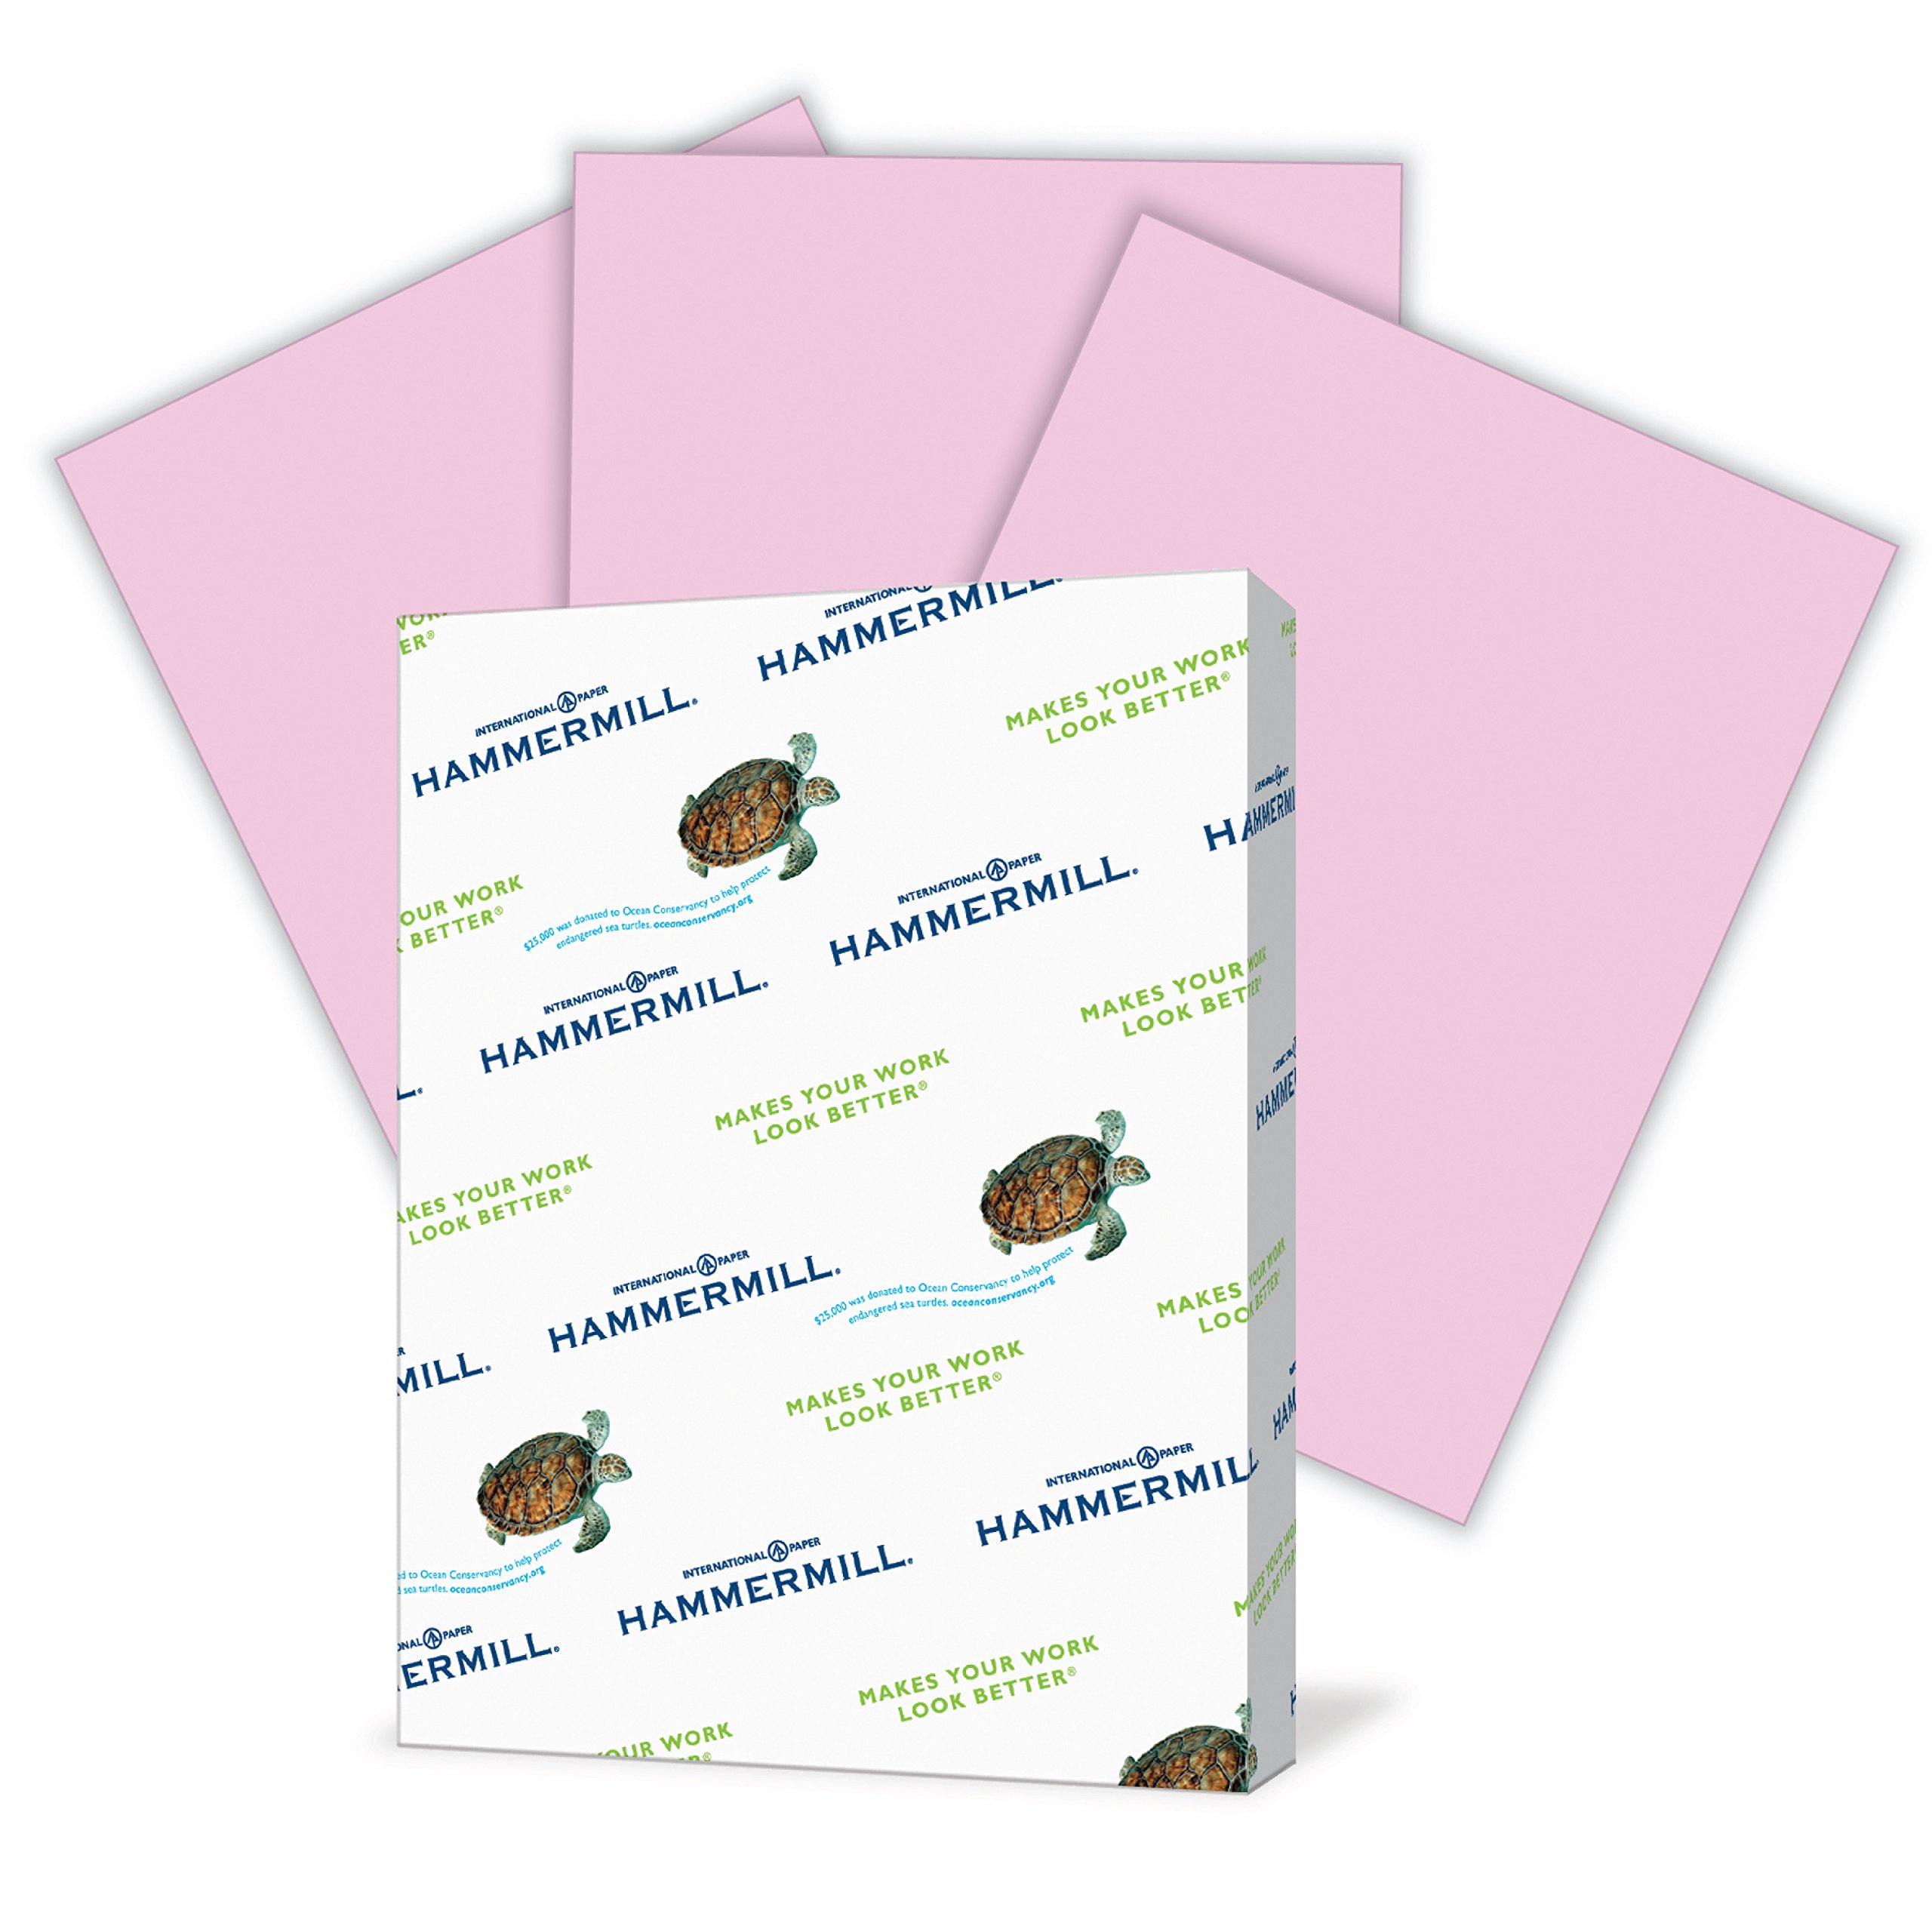 Hammermill Colored Paper, Lilac Printer Paper, 20lb, 8.5x11 Paper, Letter Size, 500 Sheets / 1 Ream, Pastel Paper, Colorful Paper (102269R) by Hammermill